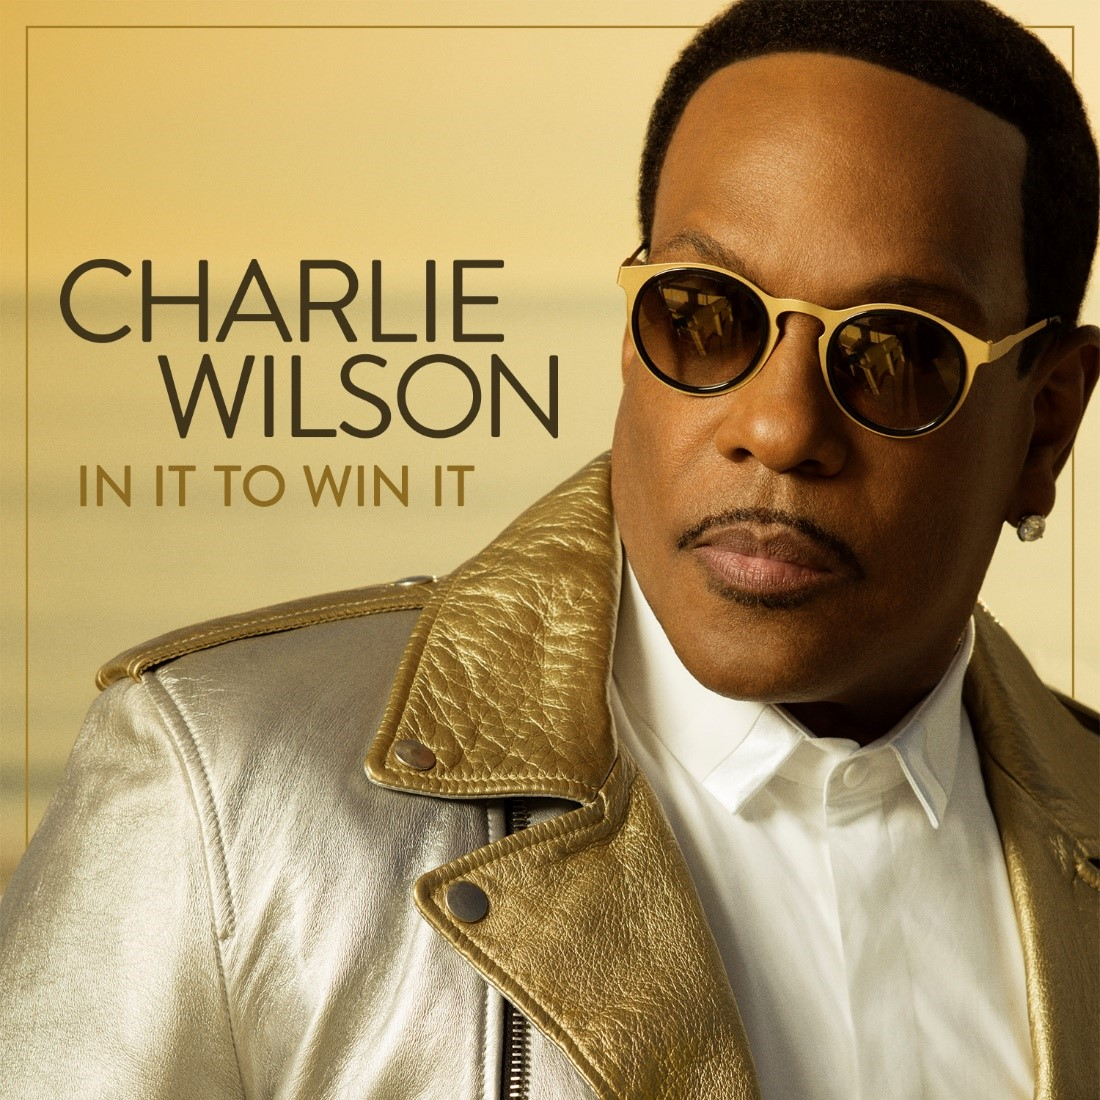 In It To Win It (2017) English Album HQ Mp3 Songs Listen And Download